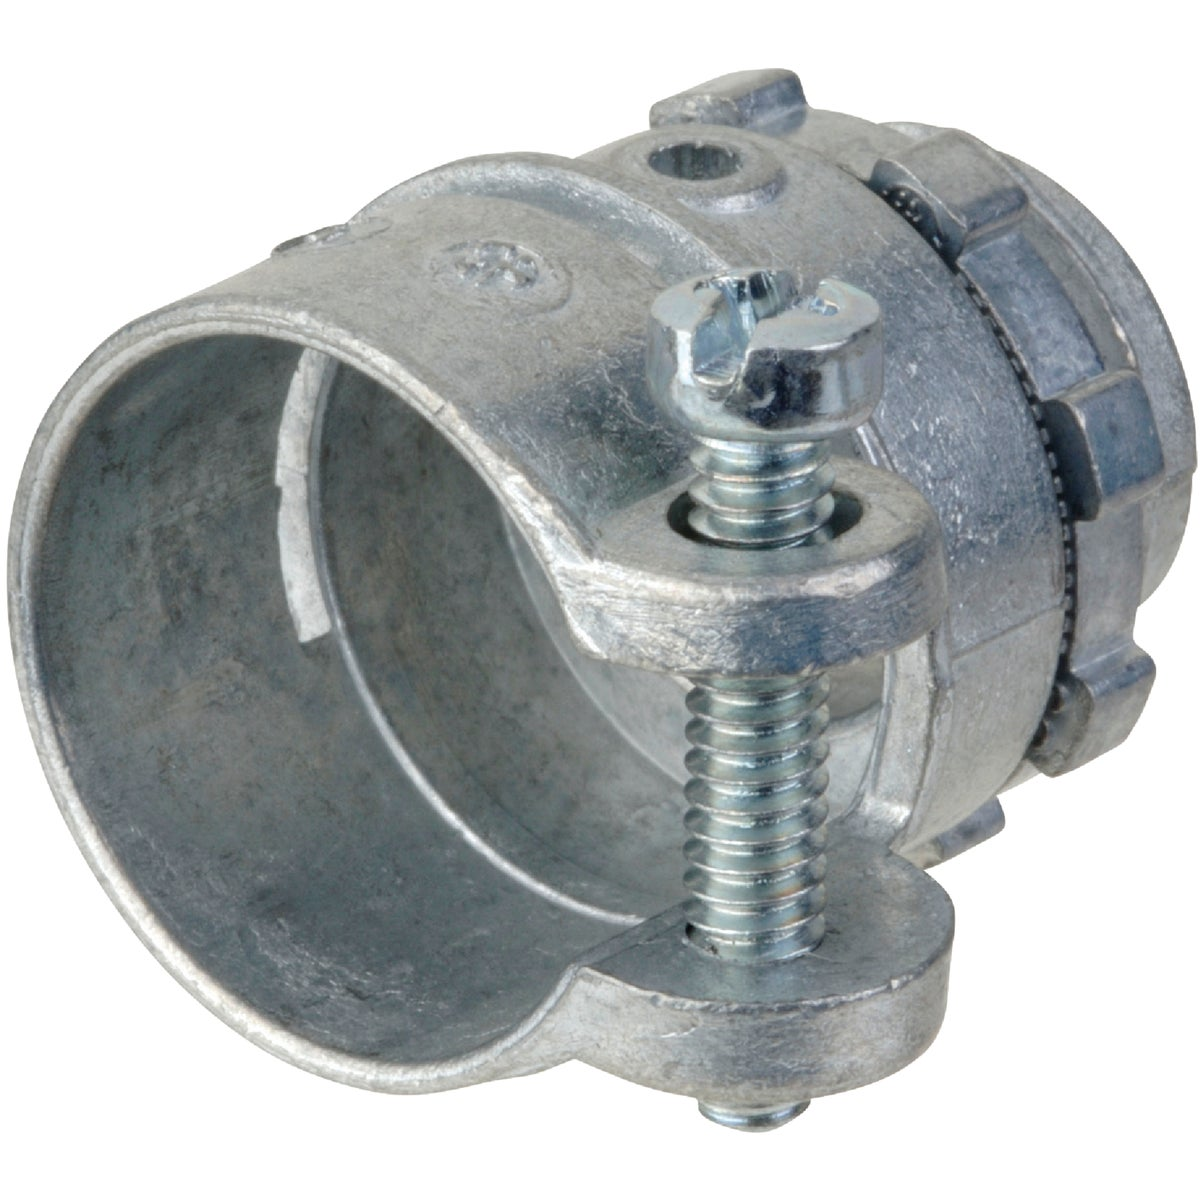 STRAIGHT FLEX CONNECTOR - XC2721 by Thomas & Betts